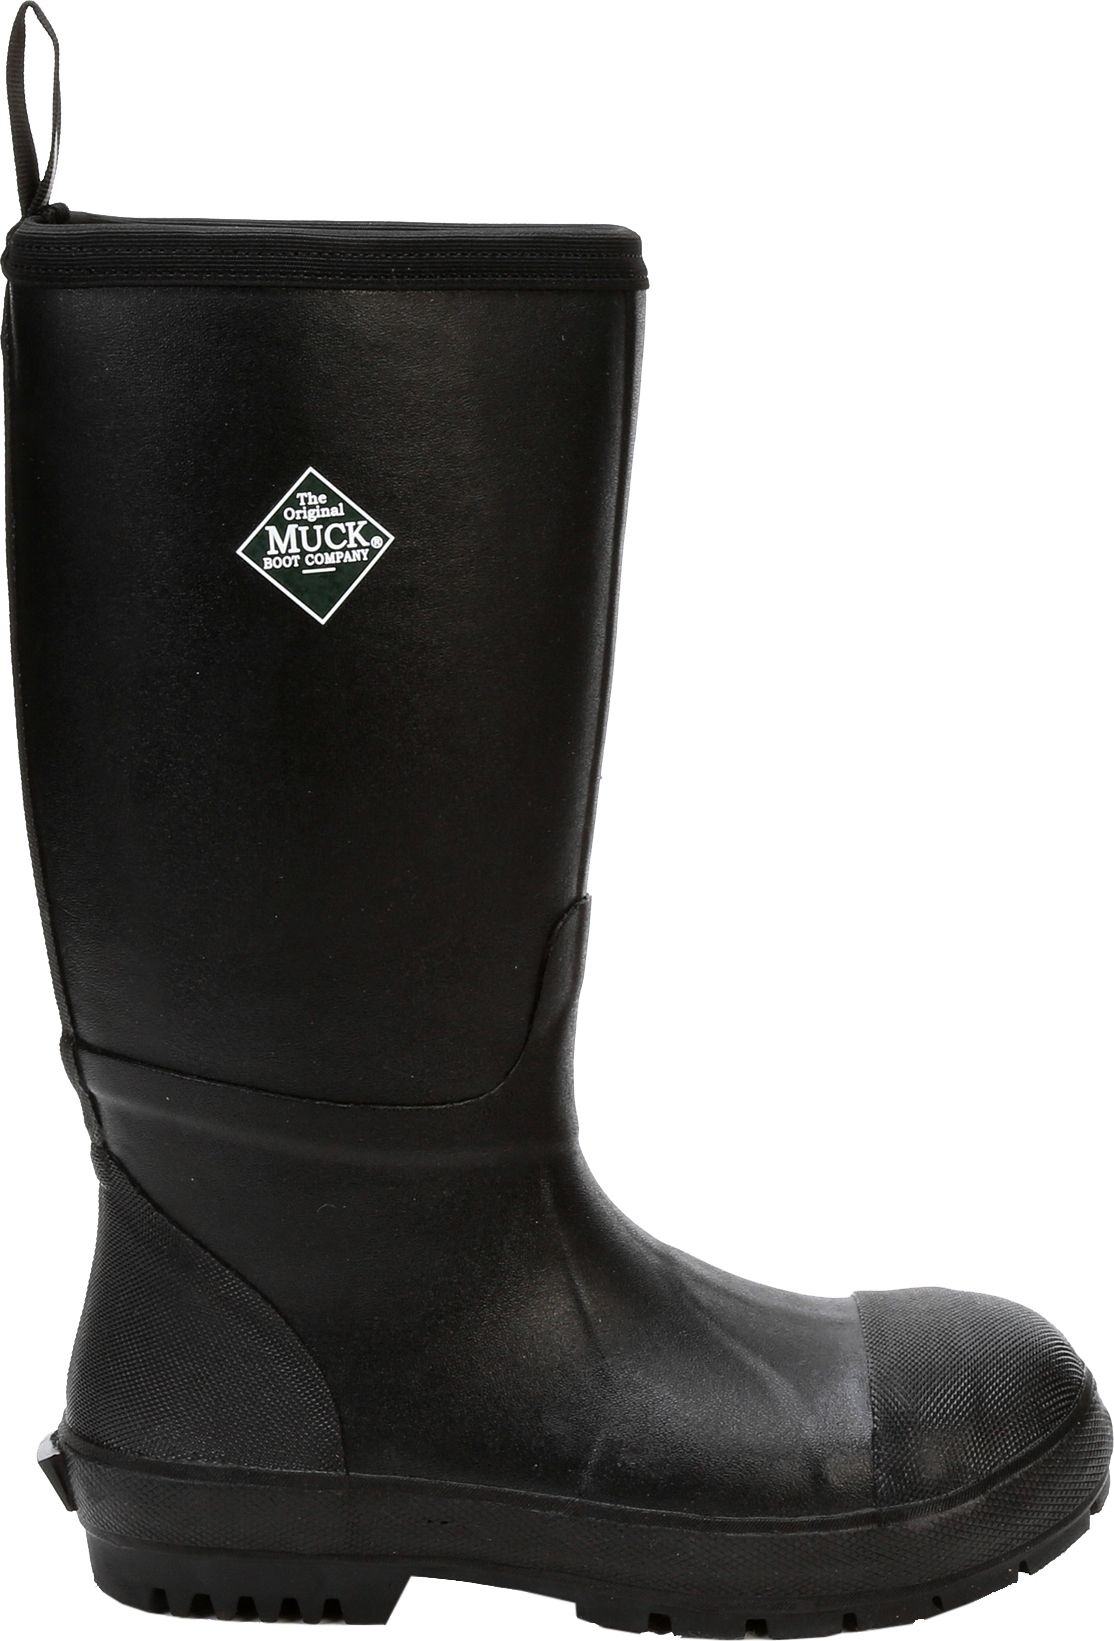 Muck Boot Men's Chore Resistant Tall Steel Toe Work Boots| DICK'S ...